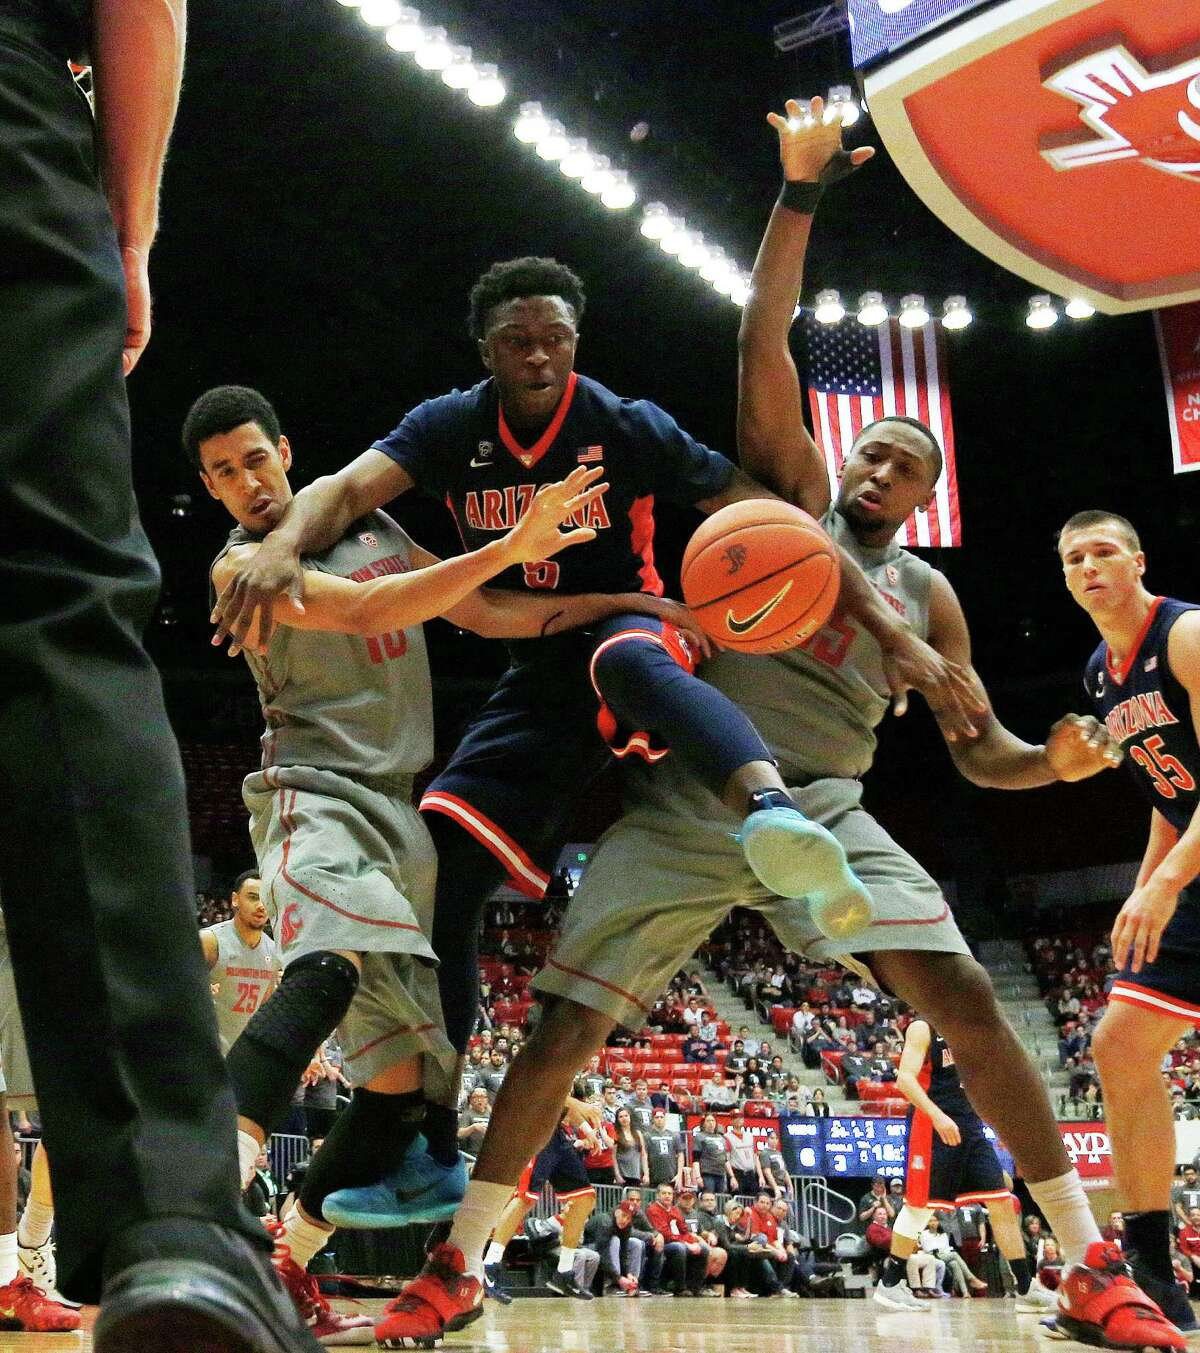 Arizona's Stanley Johnson, center, fights for a rebound against Washington State's Dexter Kernich-Drew, left, and Junior Longrus during the first half of an NCAA college basketball game, Sunday, Feb. 15, 2015, in Pullman, Wash. (AP Photo/Young Kwak) ORG XMIT: WAYK106